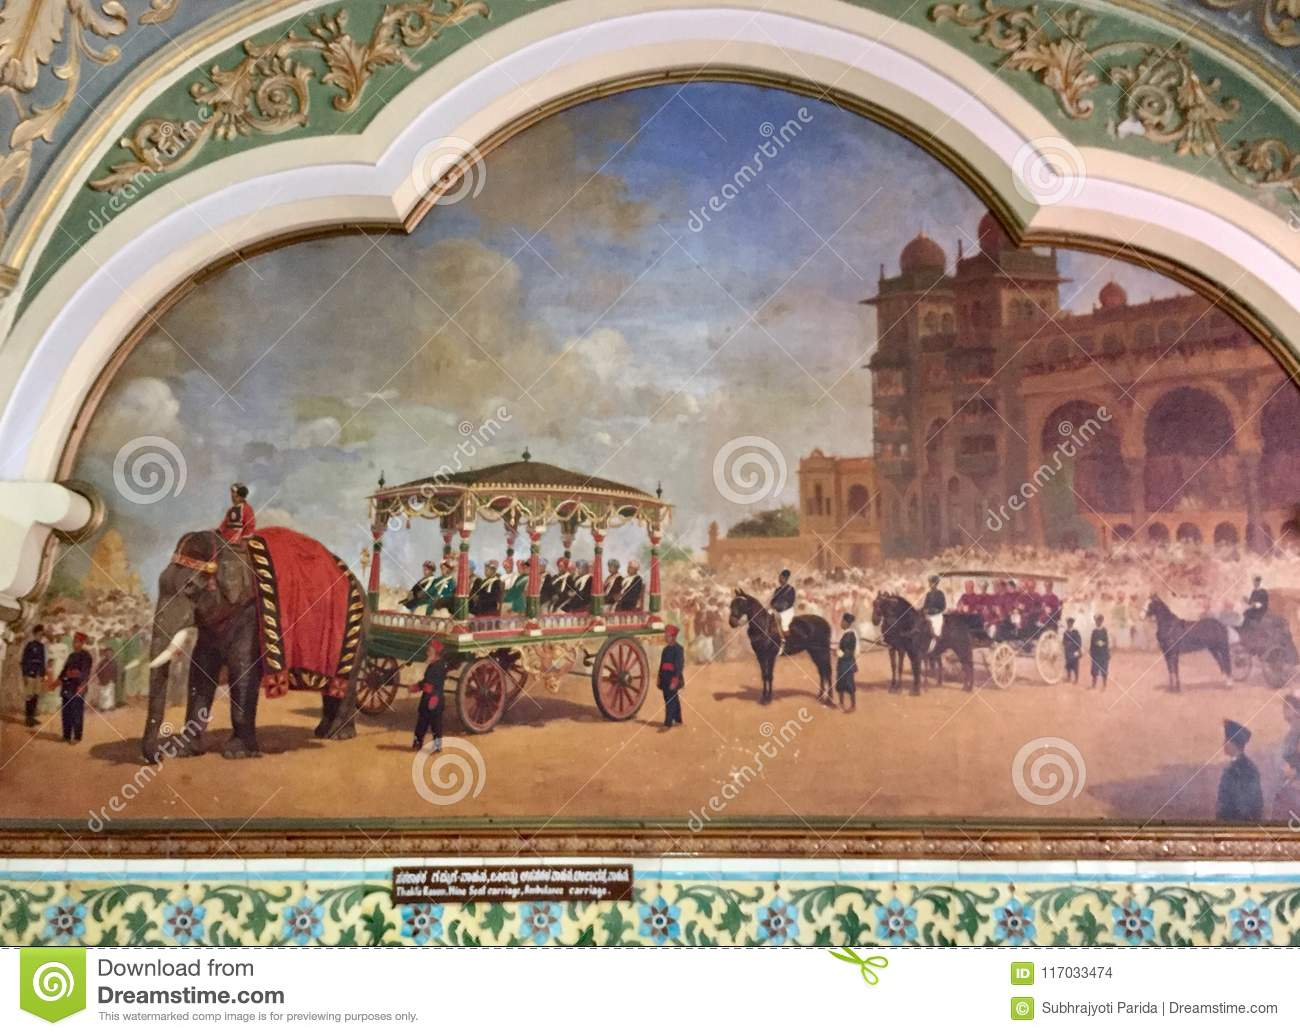 Elephant carriage and Nine seater carriage in the princely state of Mysore